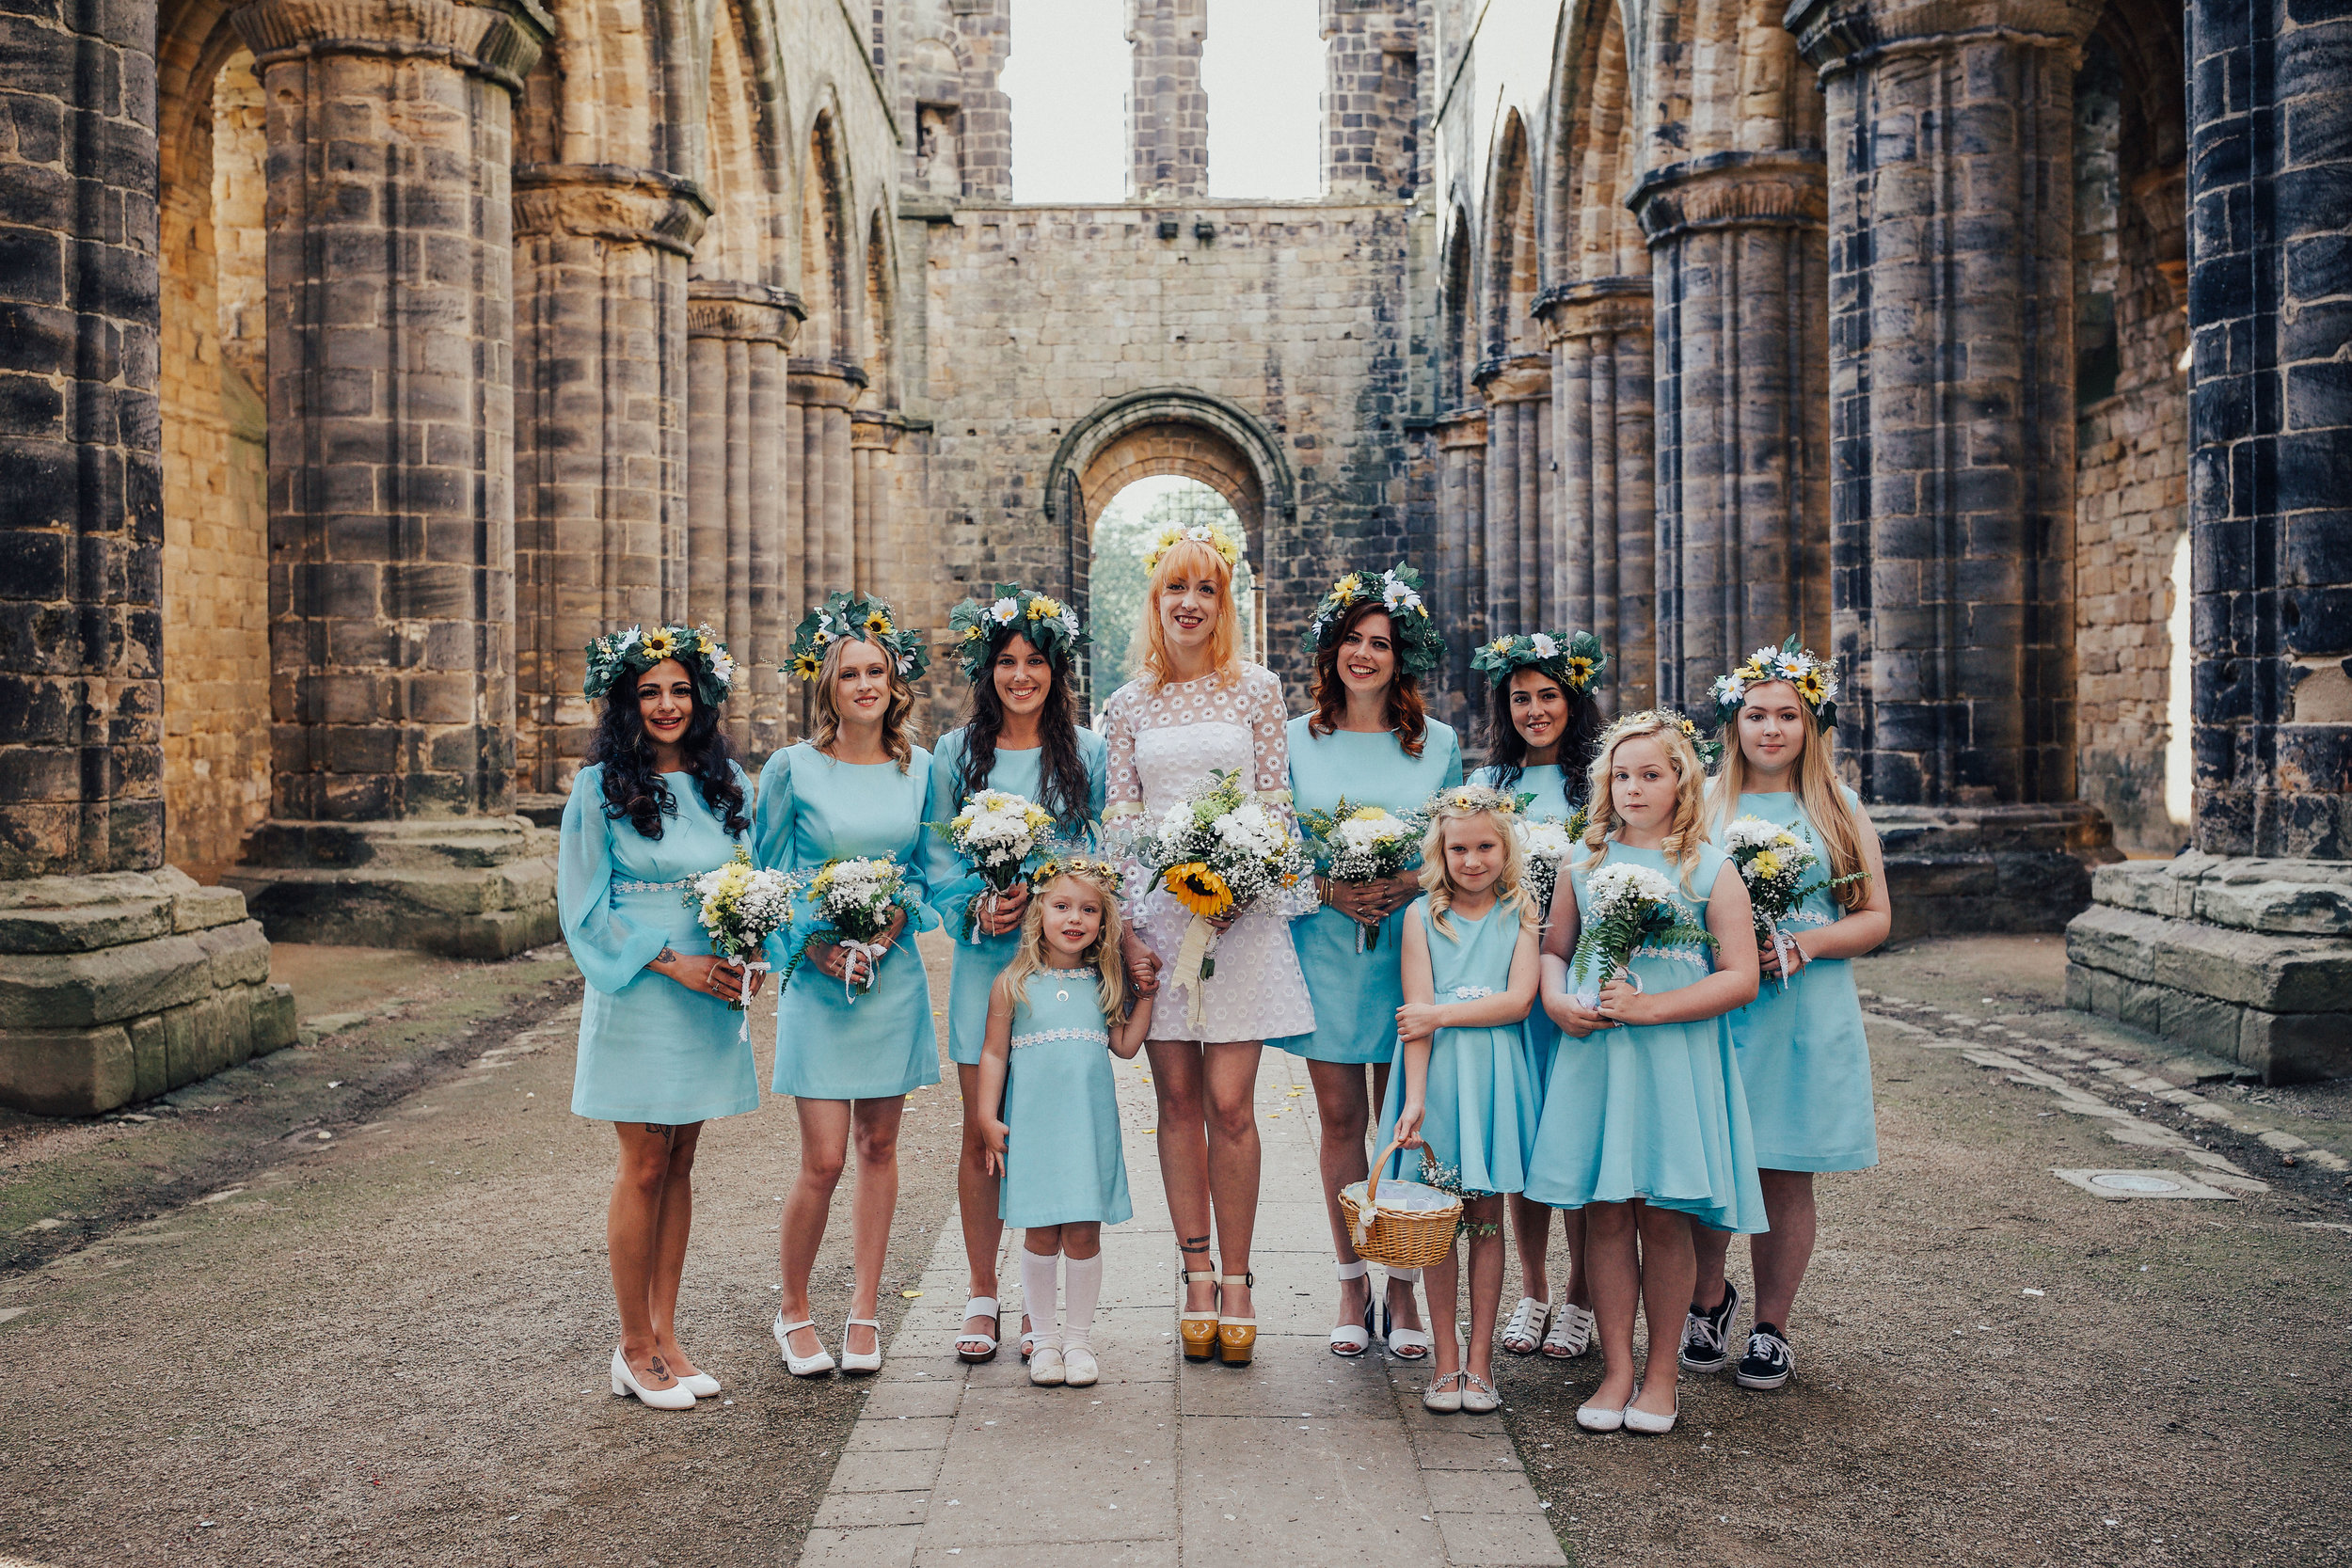 ALTERNATIVE_WEDDING_PHOTOGRAPHY_LEEDS_UK_PJ_PHILLIPS_PHOTOGRAPHY_93.jpg